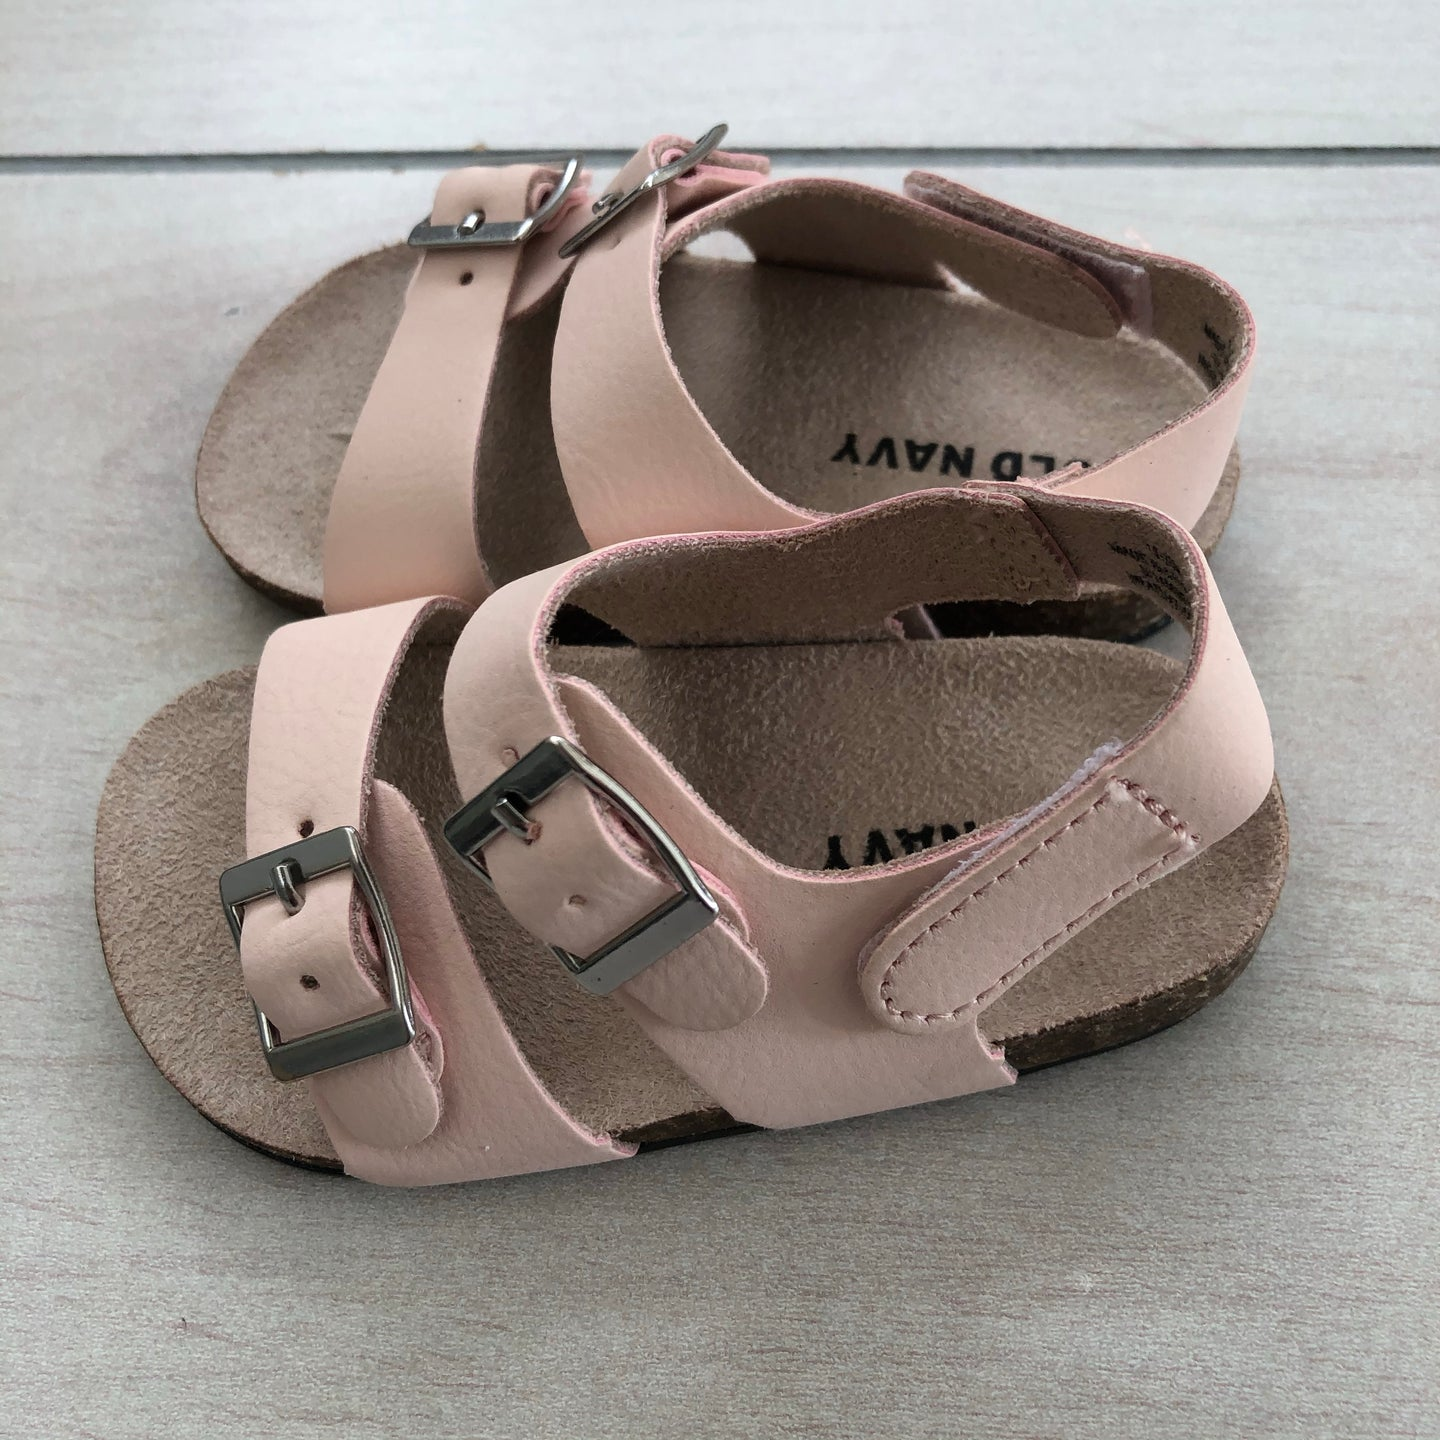 Old Navy Pale Pink Sandals 12-18 Size Months